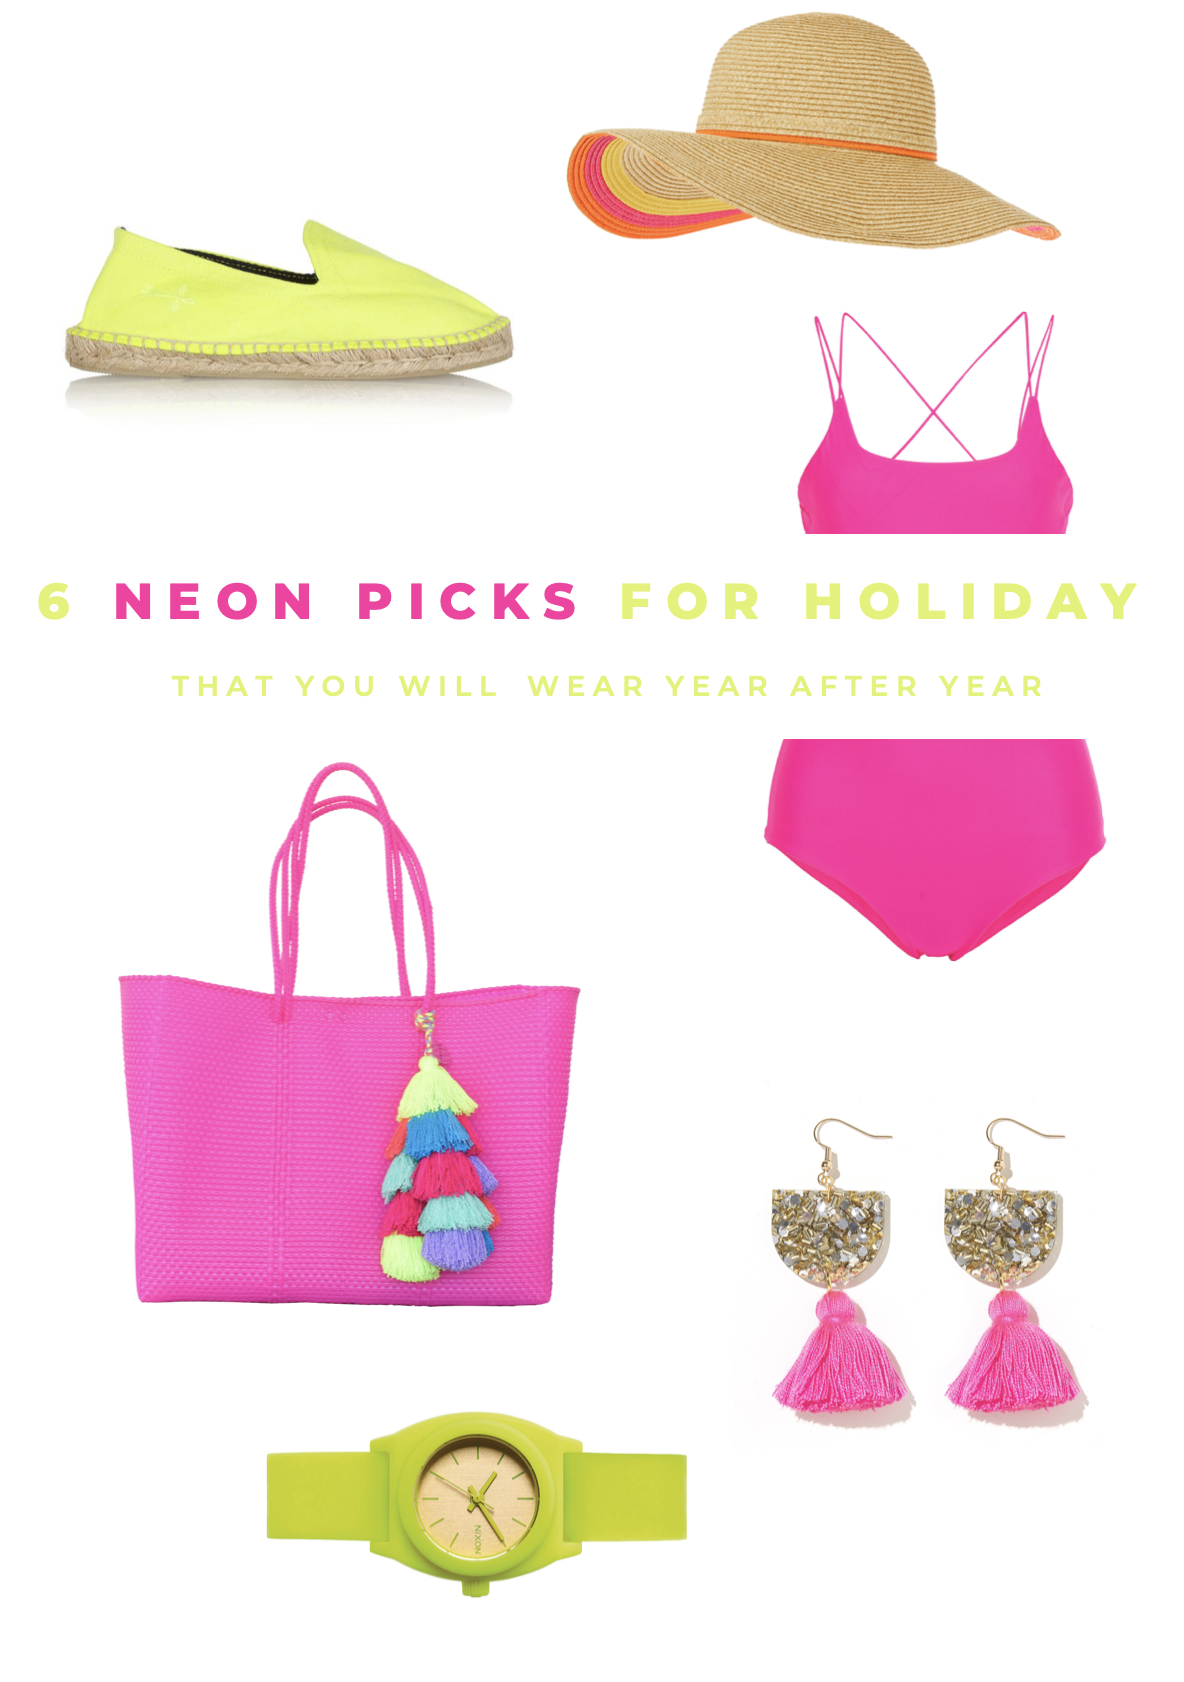 6 Neon Holiday Pieces You Will Wear Year After Year